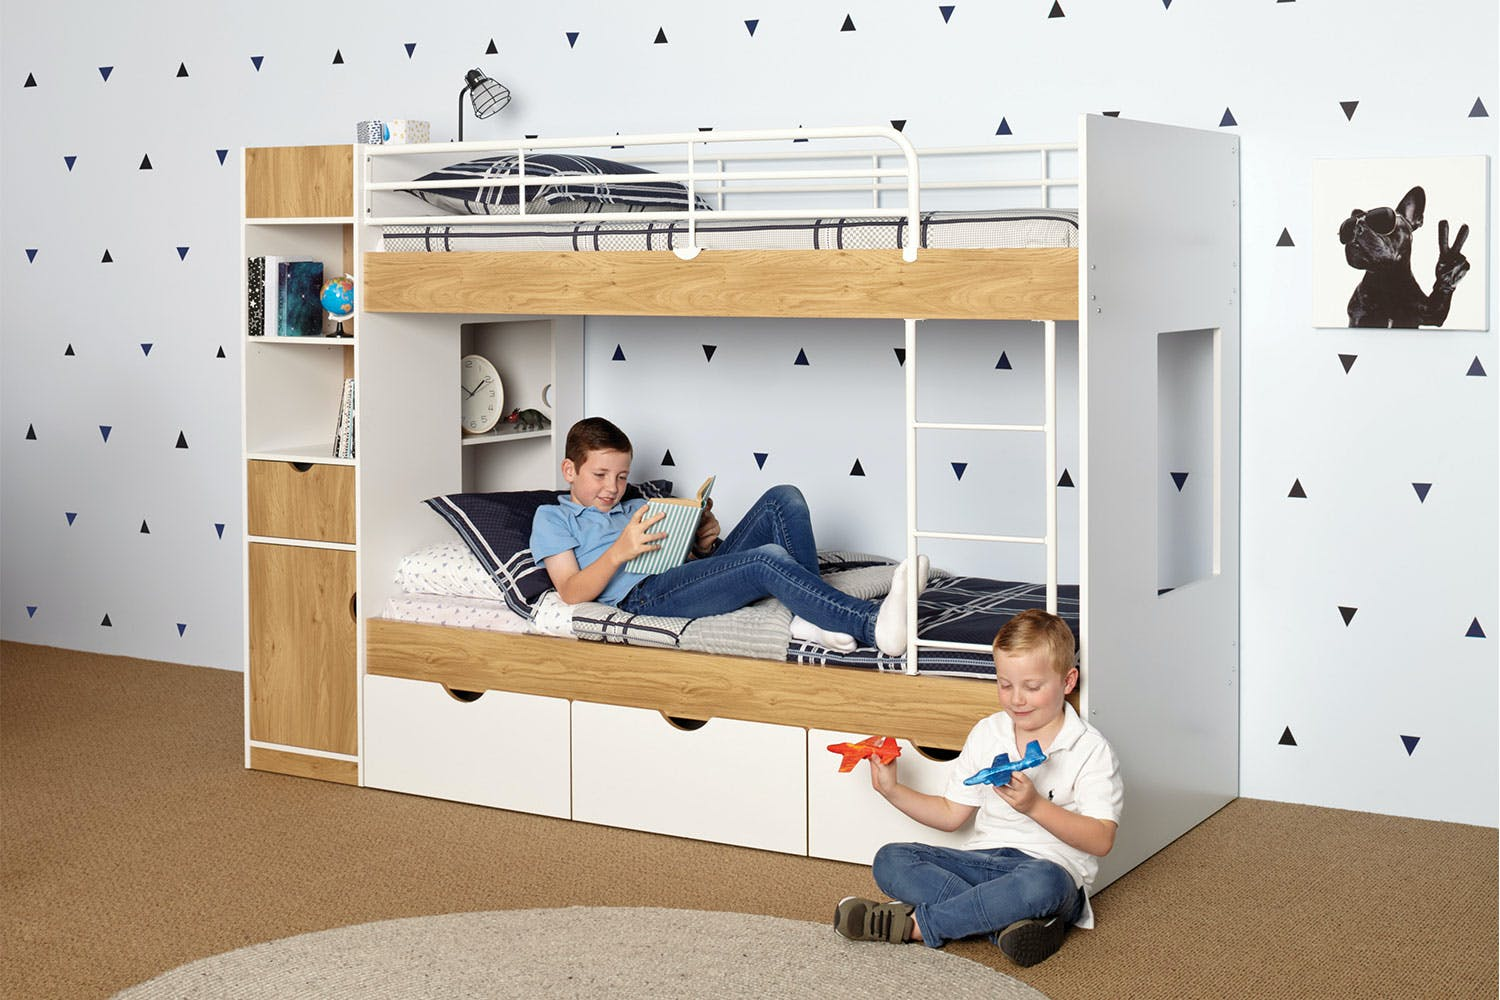 Olympus Single Bunk Bed Frame By John Young Furniture Harvey Norman New Zealand